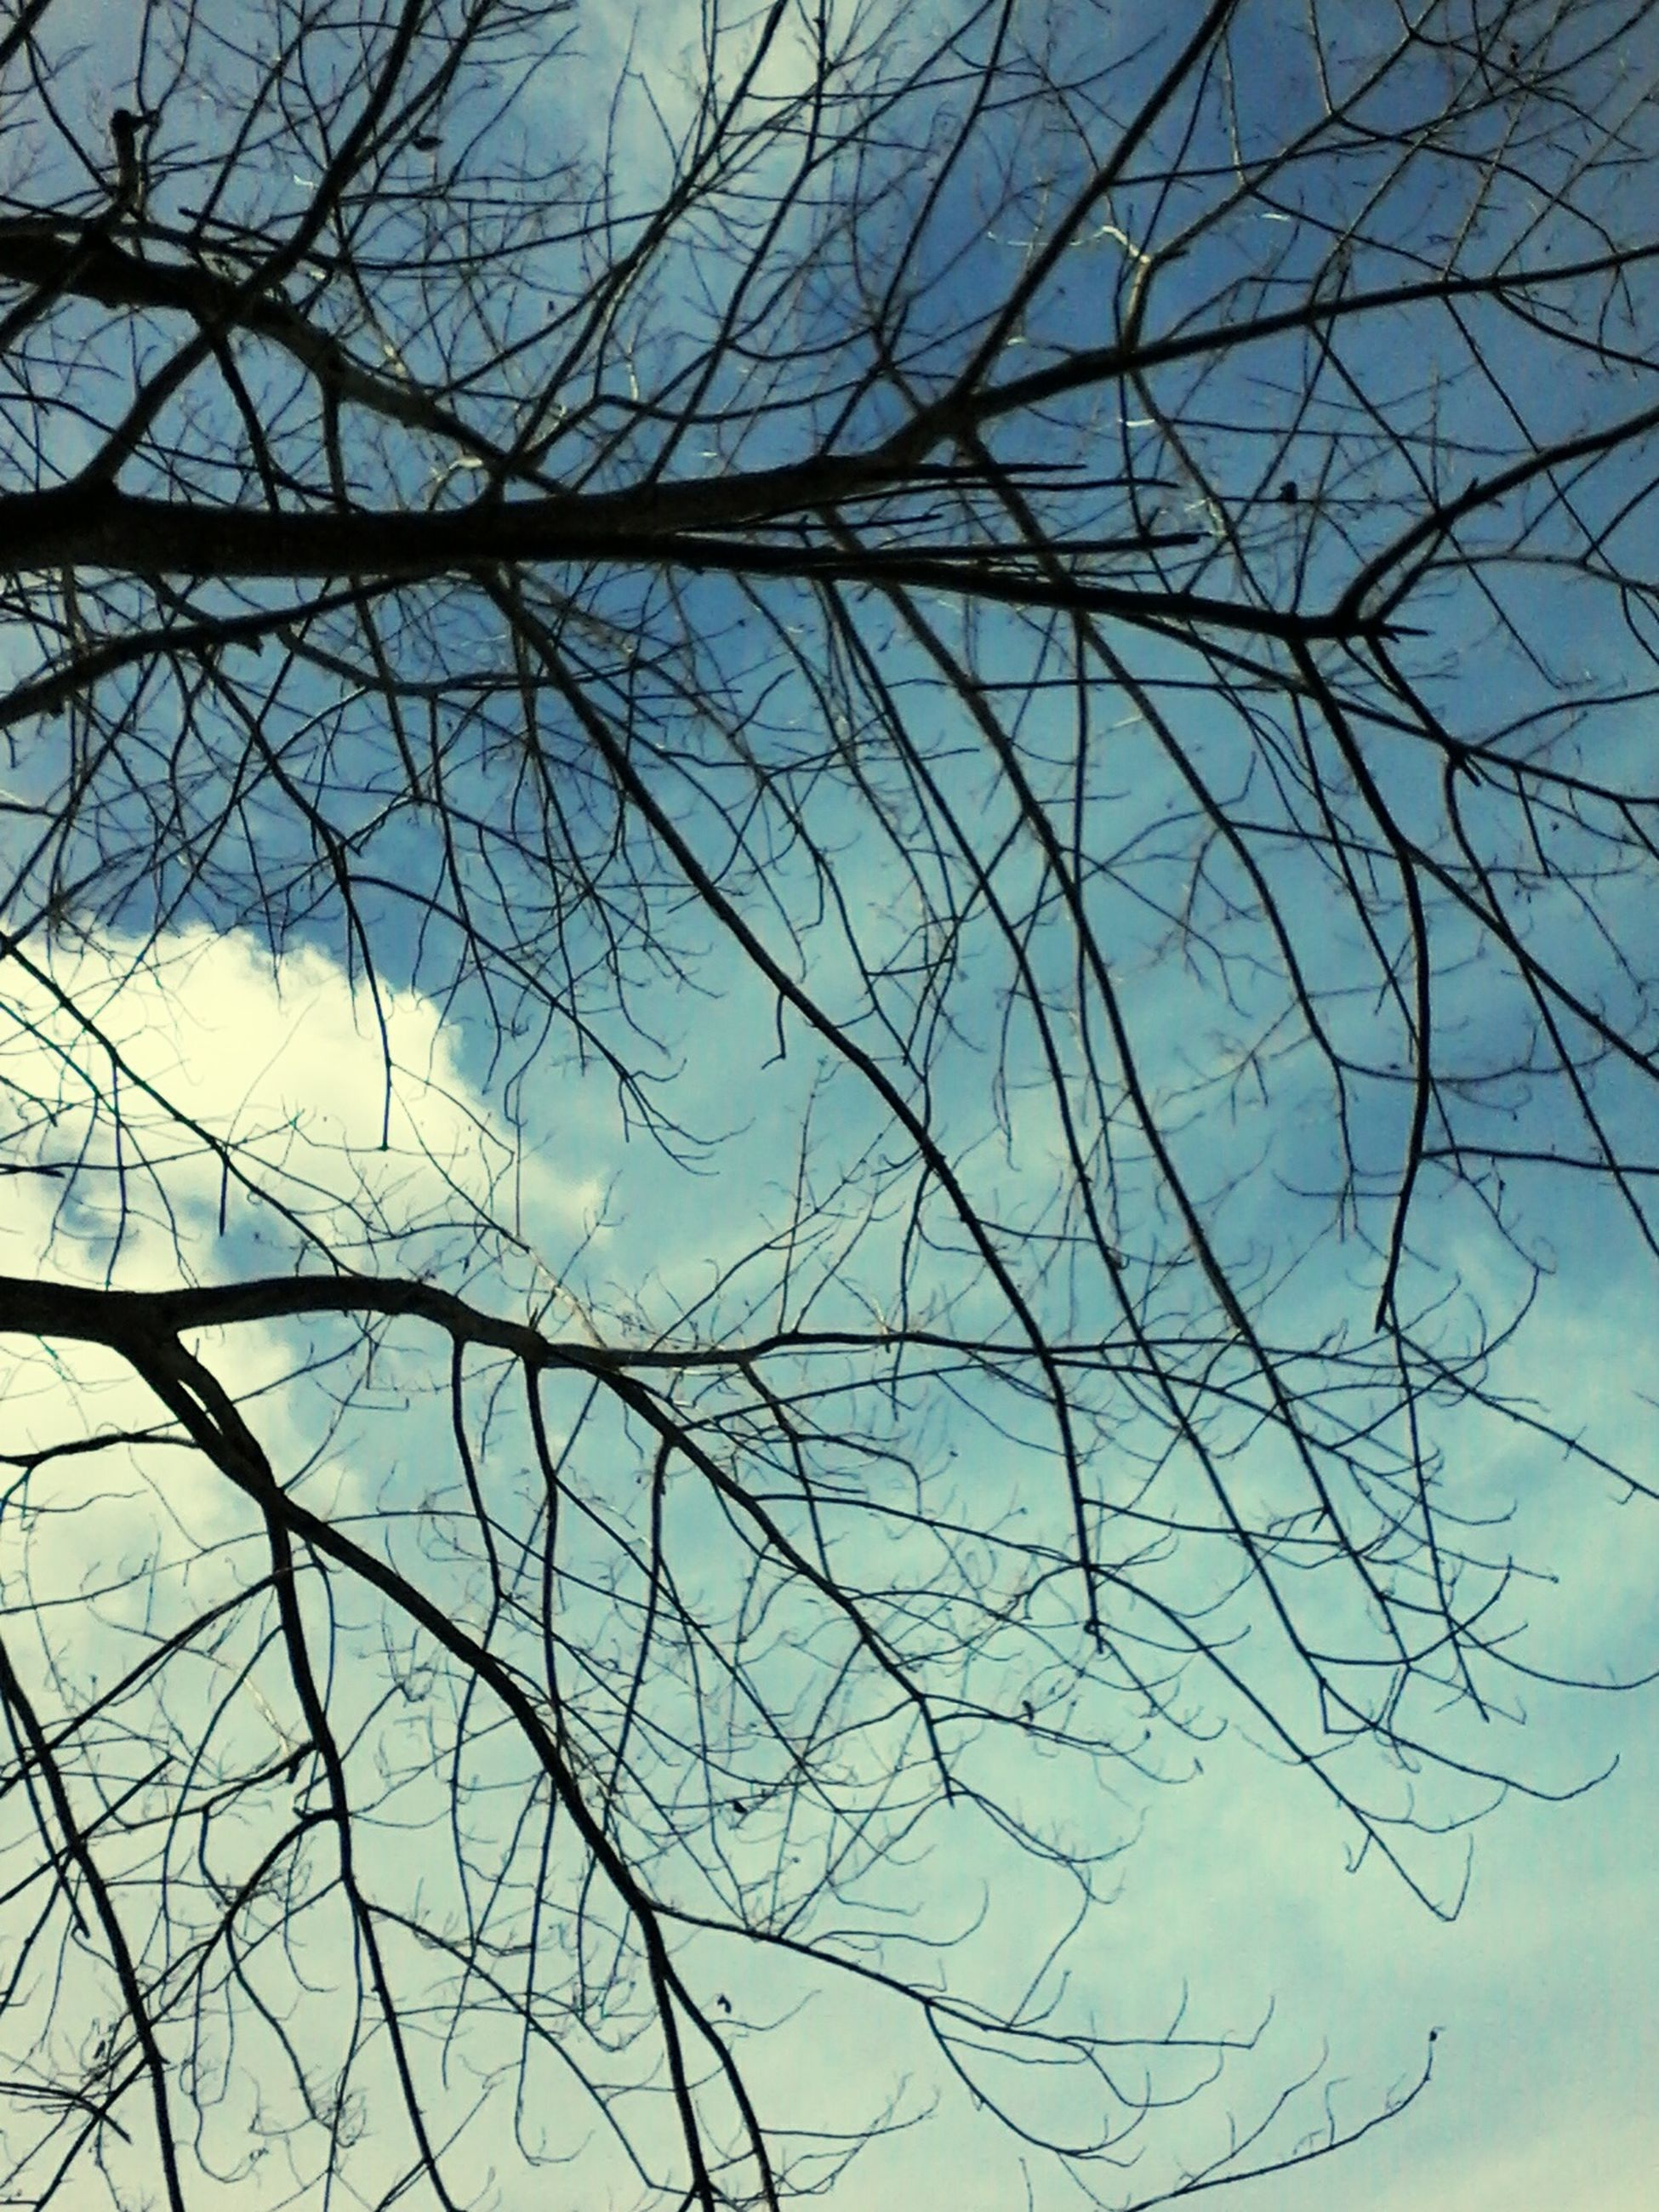 sky, bare tree, nature, tree, no people, tranquility, backgrounds, outdoors, branch, low angle view, beauty in nature, day, close-up